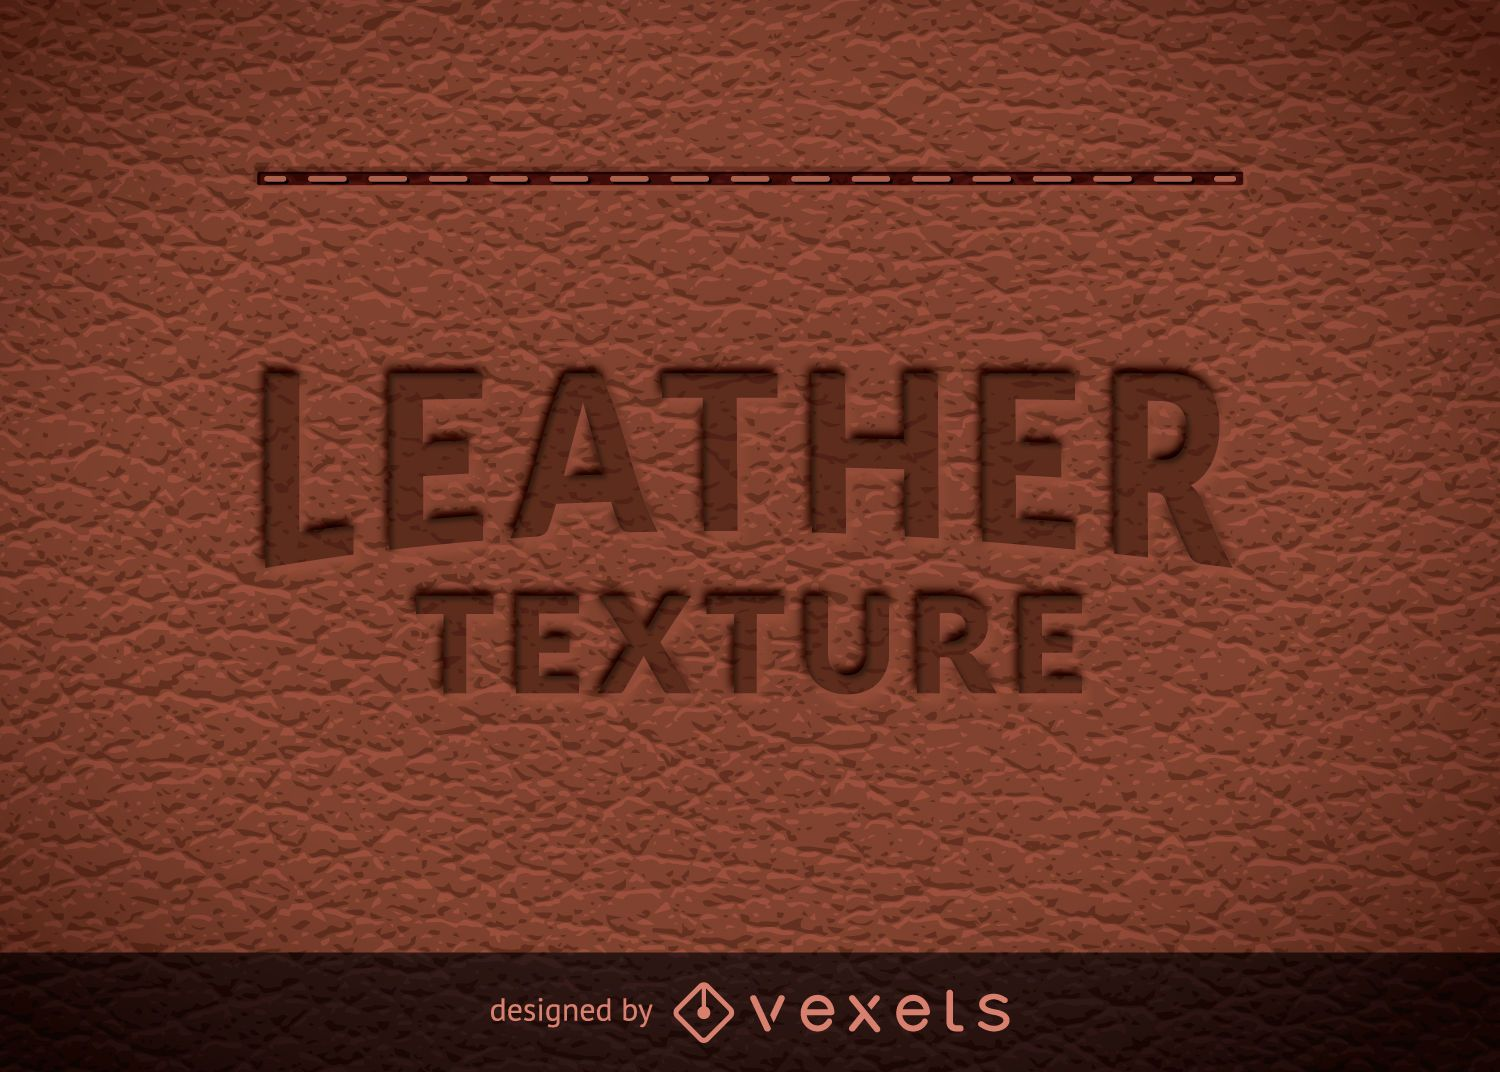 Natural Leather Texture Vector Download